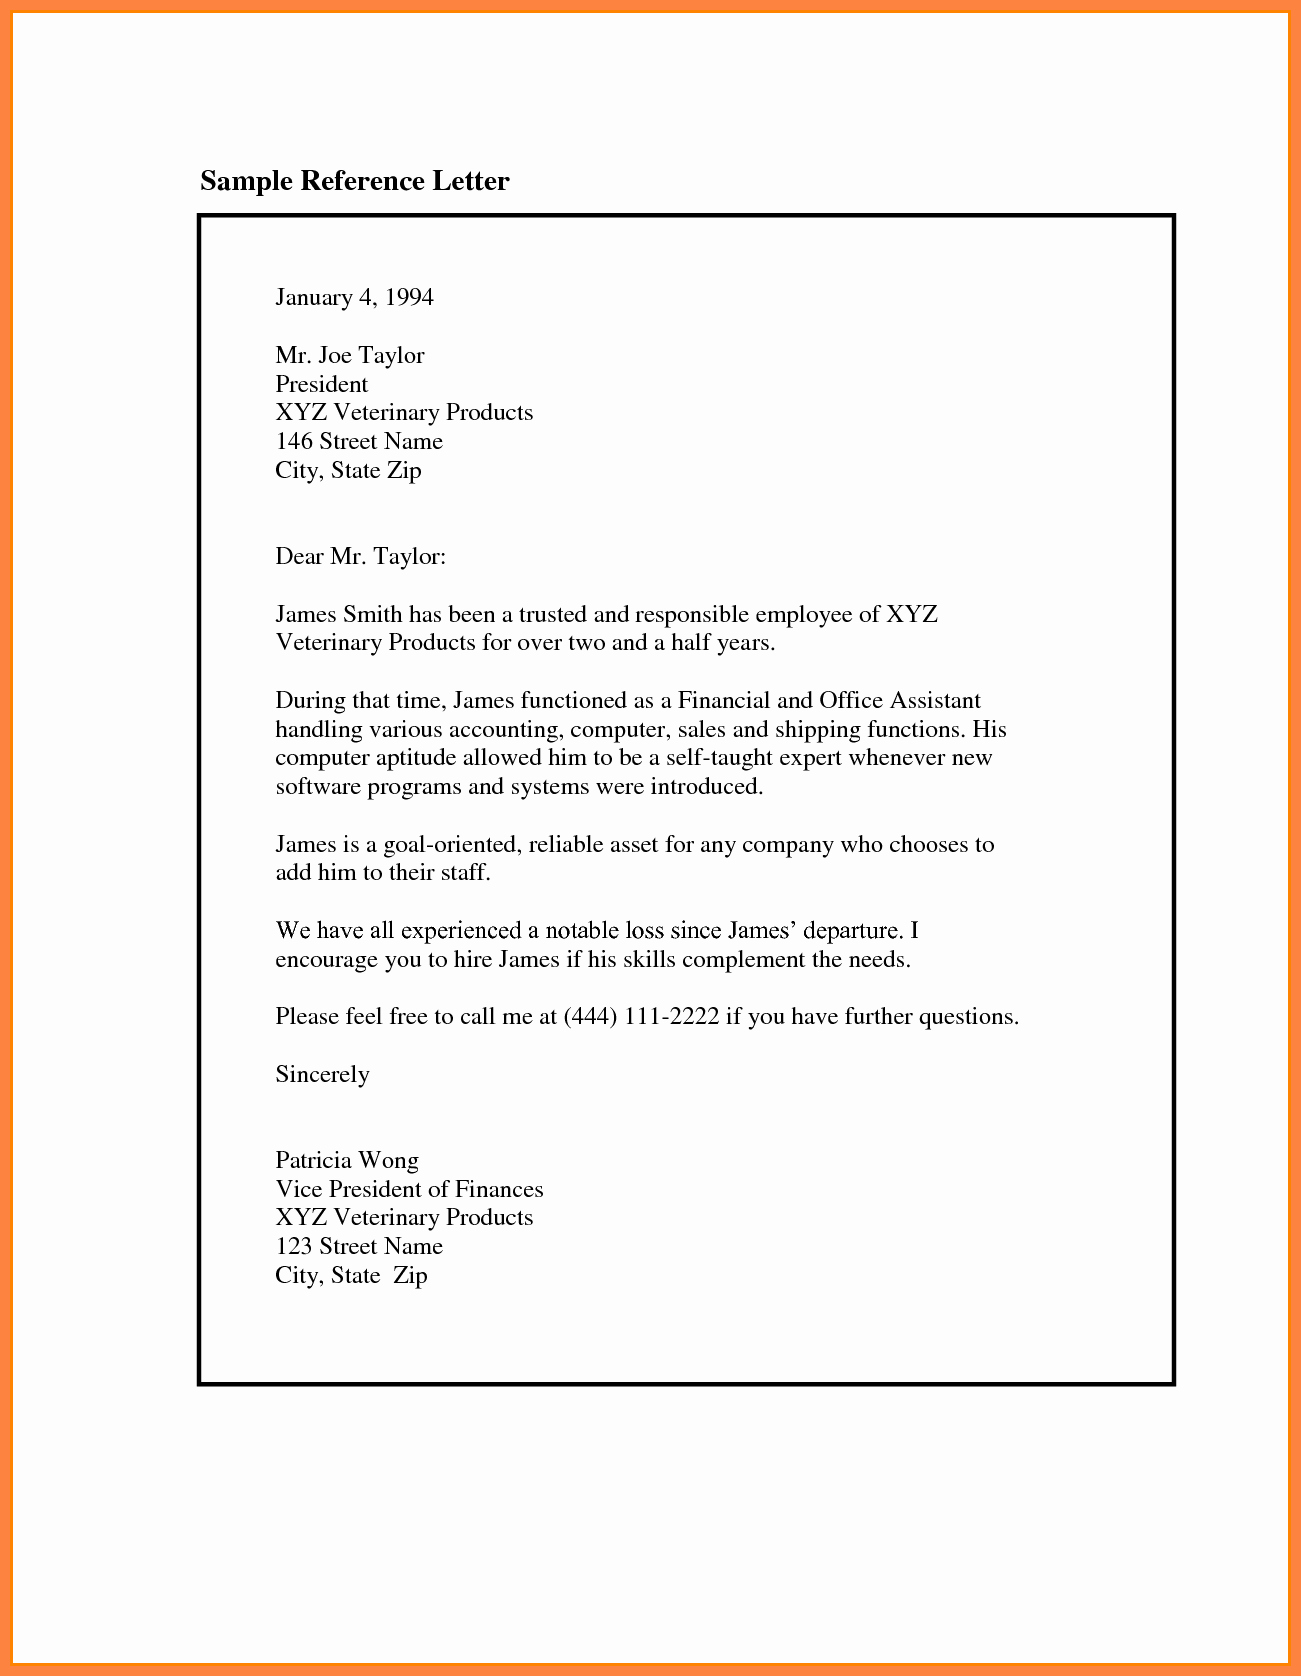 Sample Reference Letter for Employee Awesome 9 Re Mendation Letter for Employee